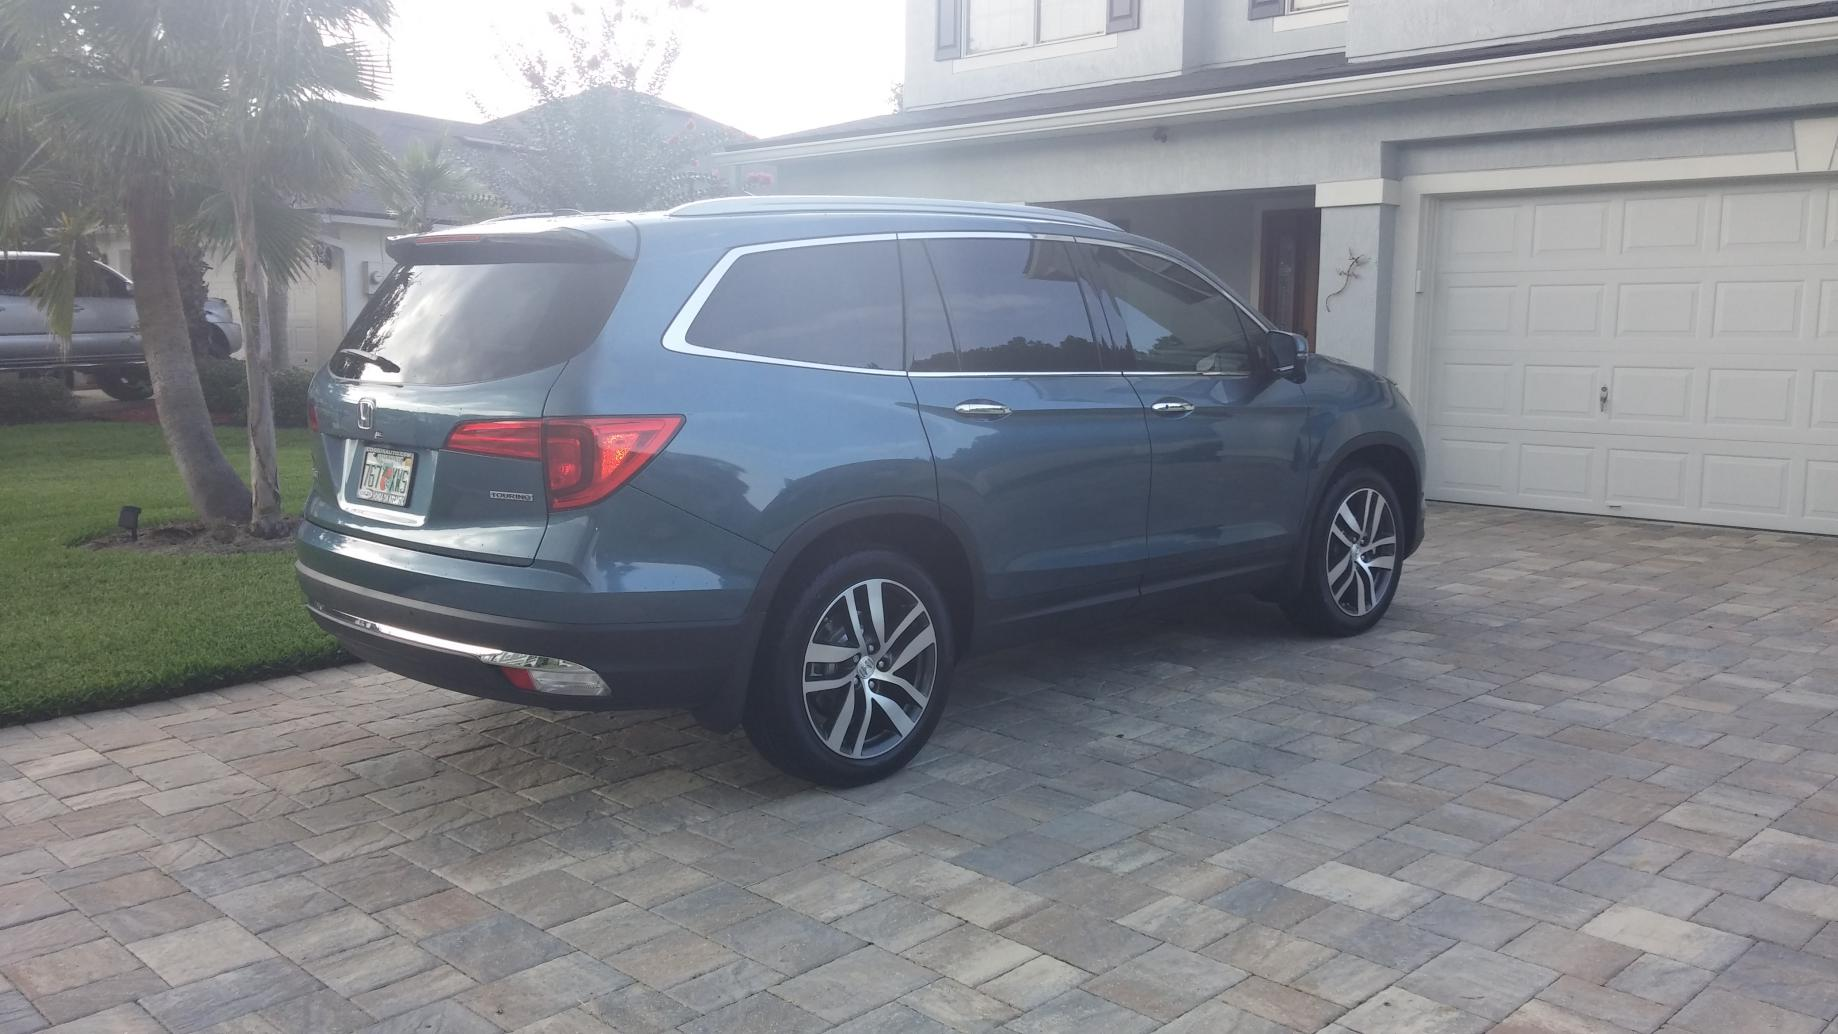 Click image for larger versionname for Honda pilot prices paid